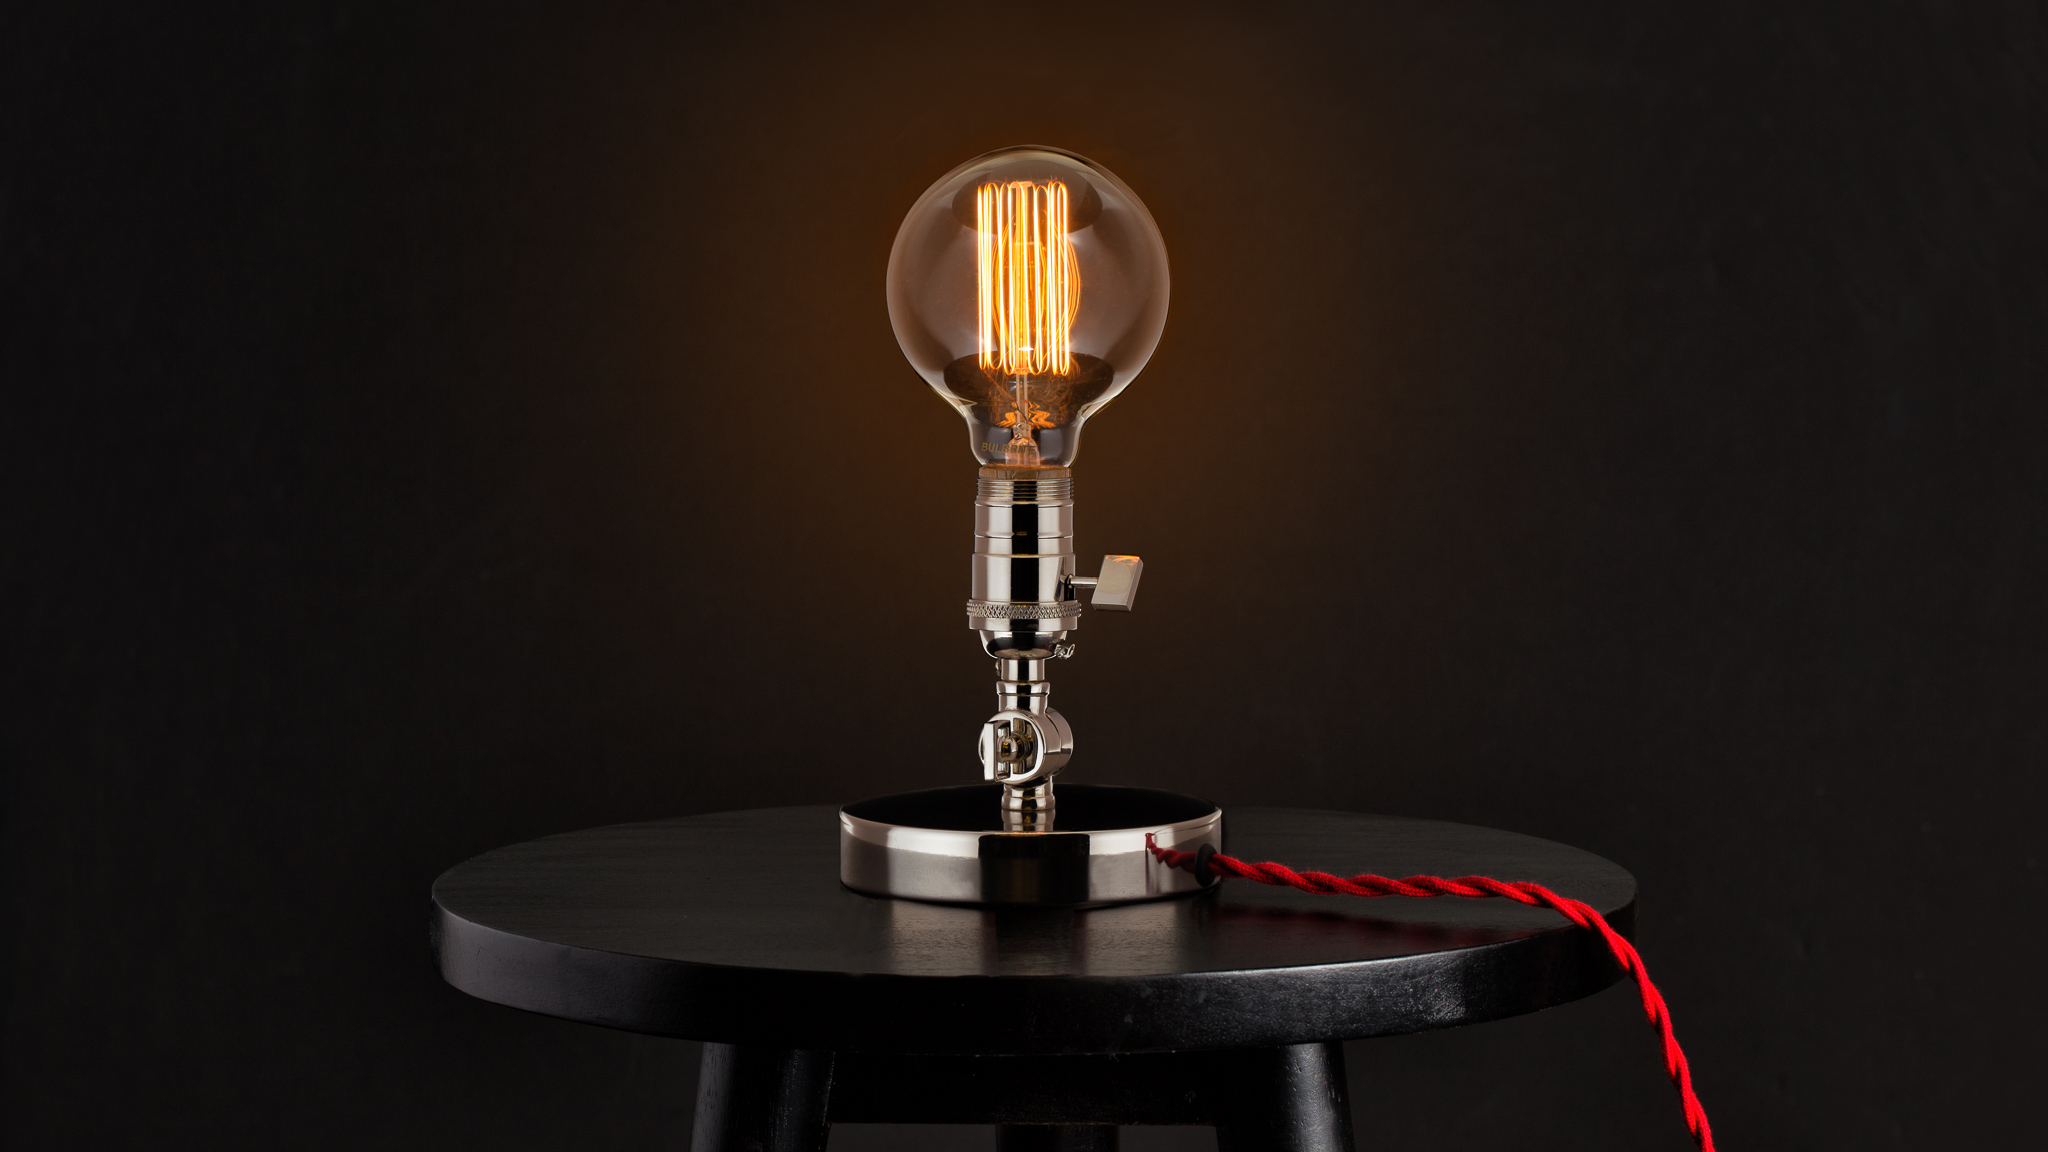 The Fifth Ward Edison Lamp. Design collaboration with Long Made Co. for No. 4 St. James.